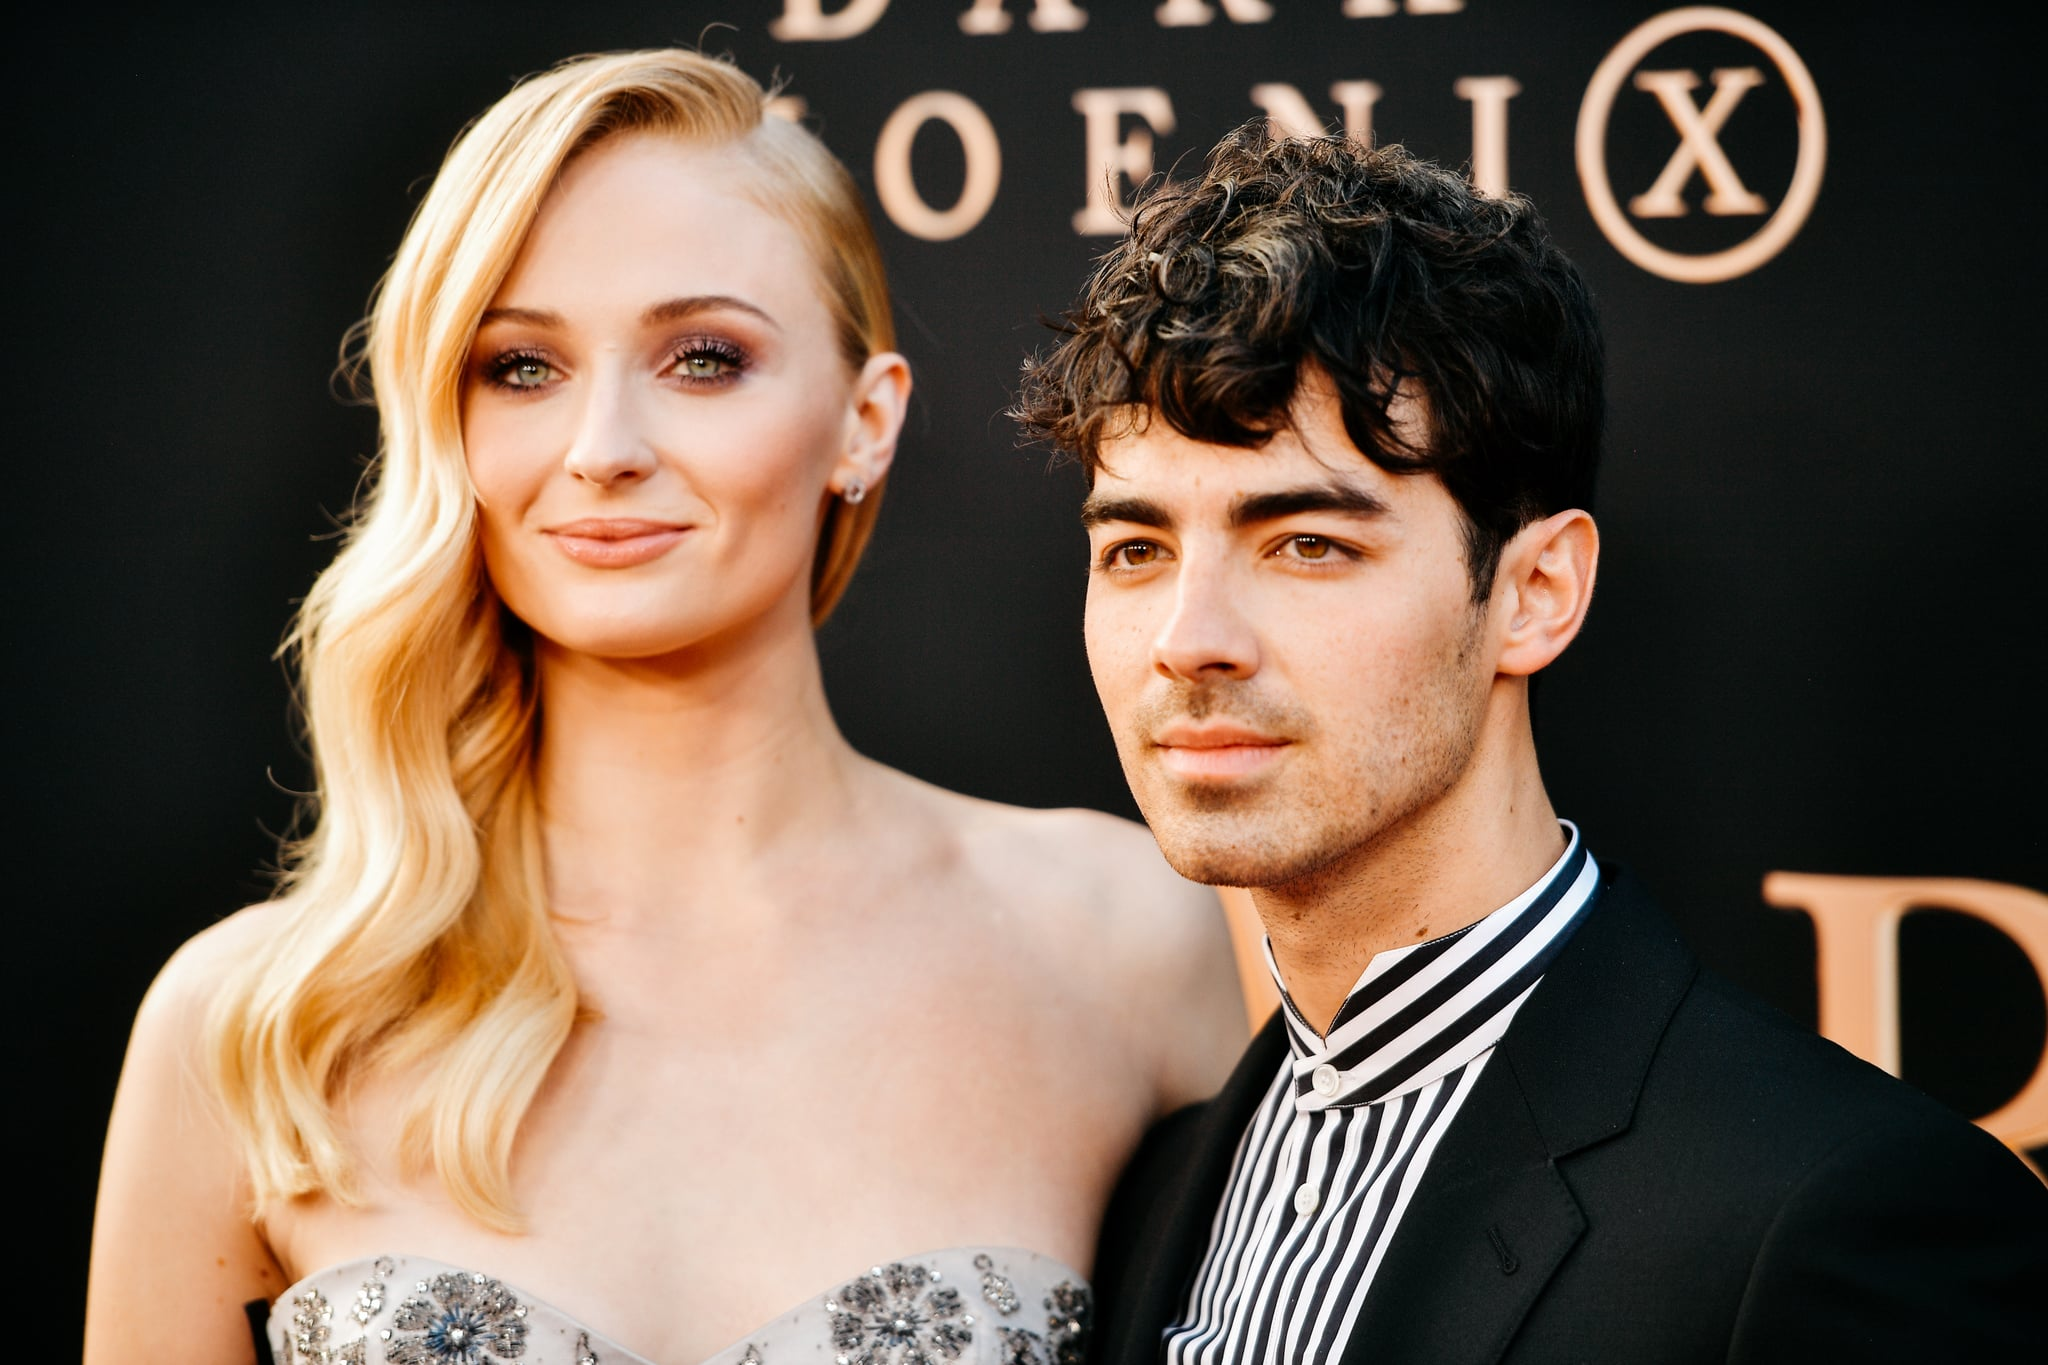 HOLLYWOOD, CALIFORNIA - JUNE 04: (EDITORS NOTE: Image has been processed using digital filters) Sophie Turner and Joe Jonas attend the premiere of 20th Century Fox's